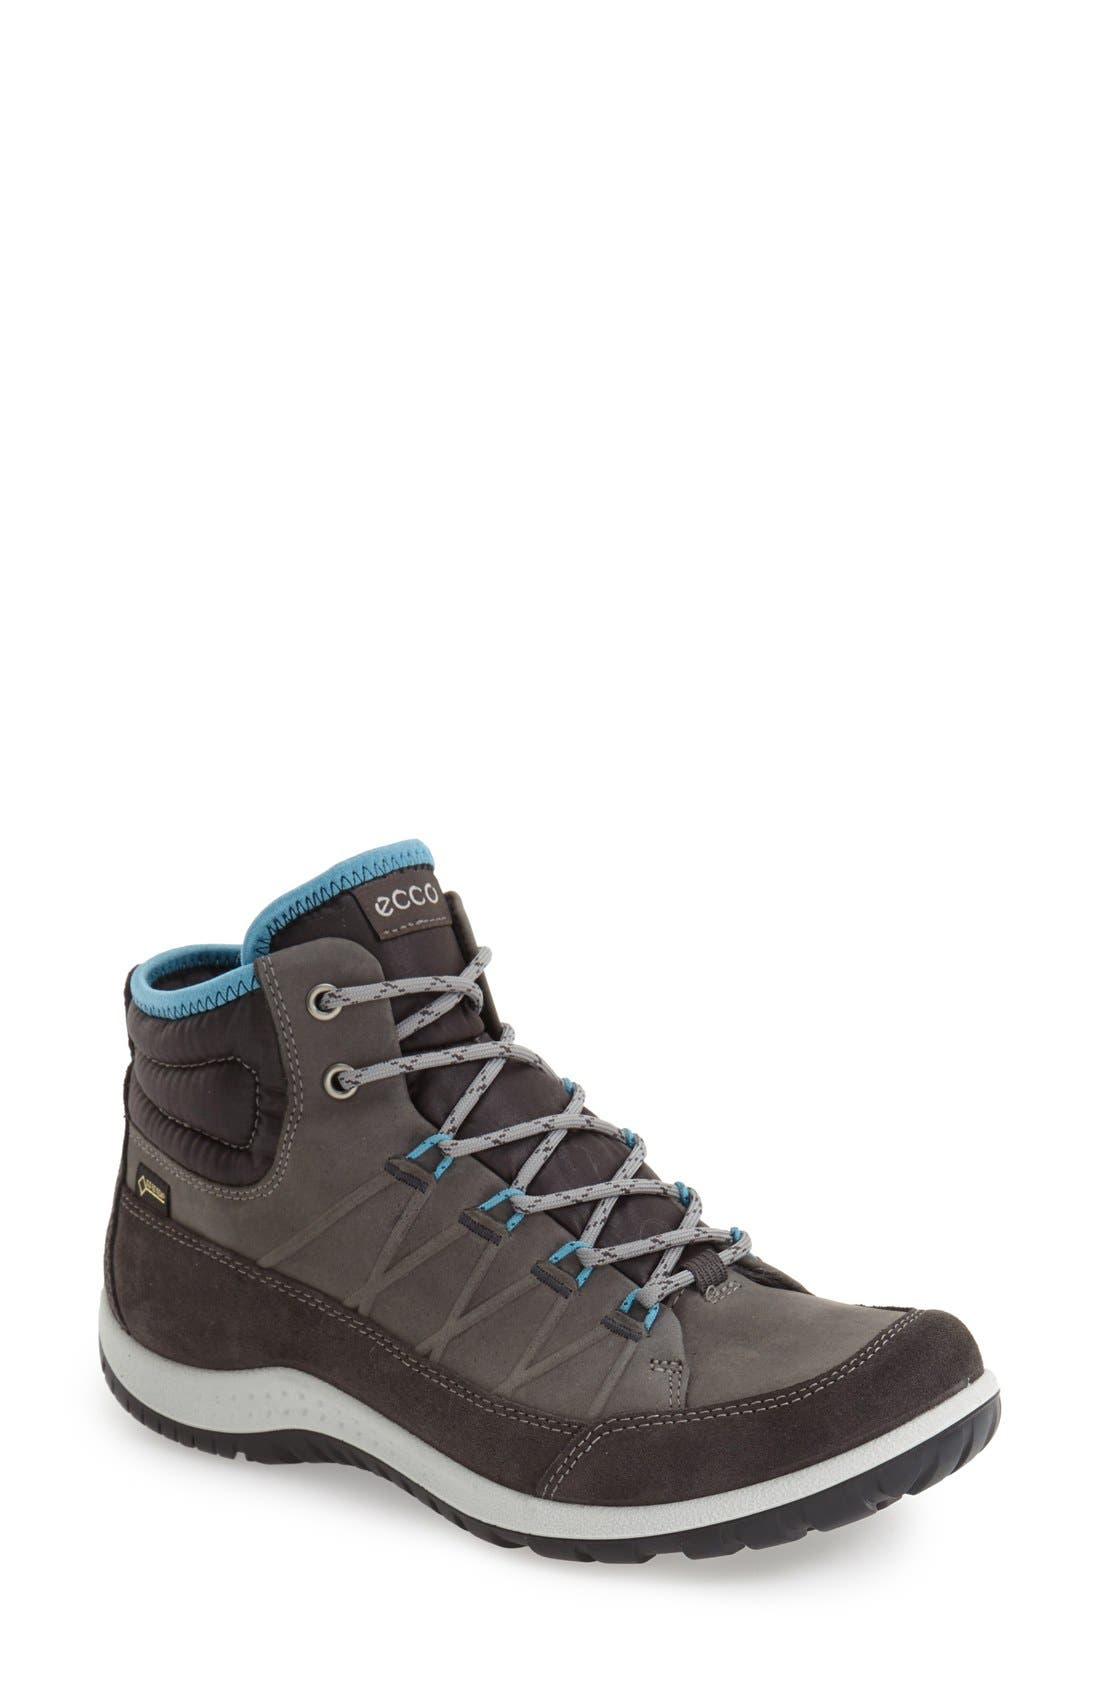 ECCO 'Aspina GTX' Waterproof High Top Shoe, Main, color, MOONLESS OILED SUEDE